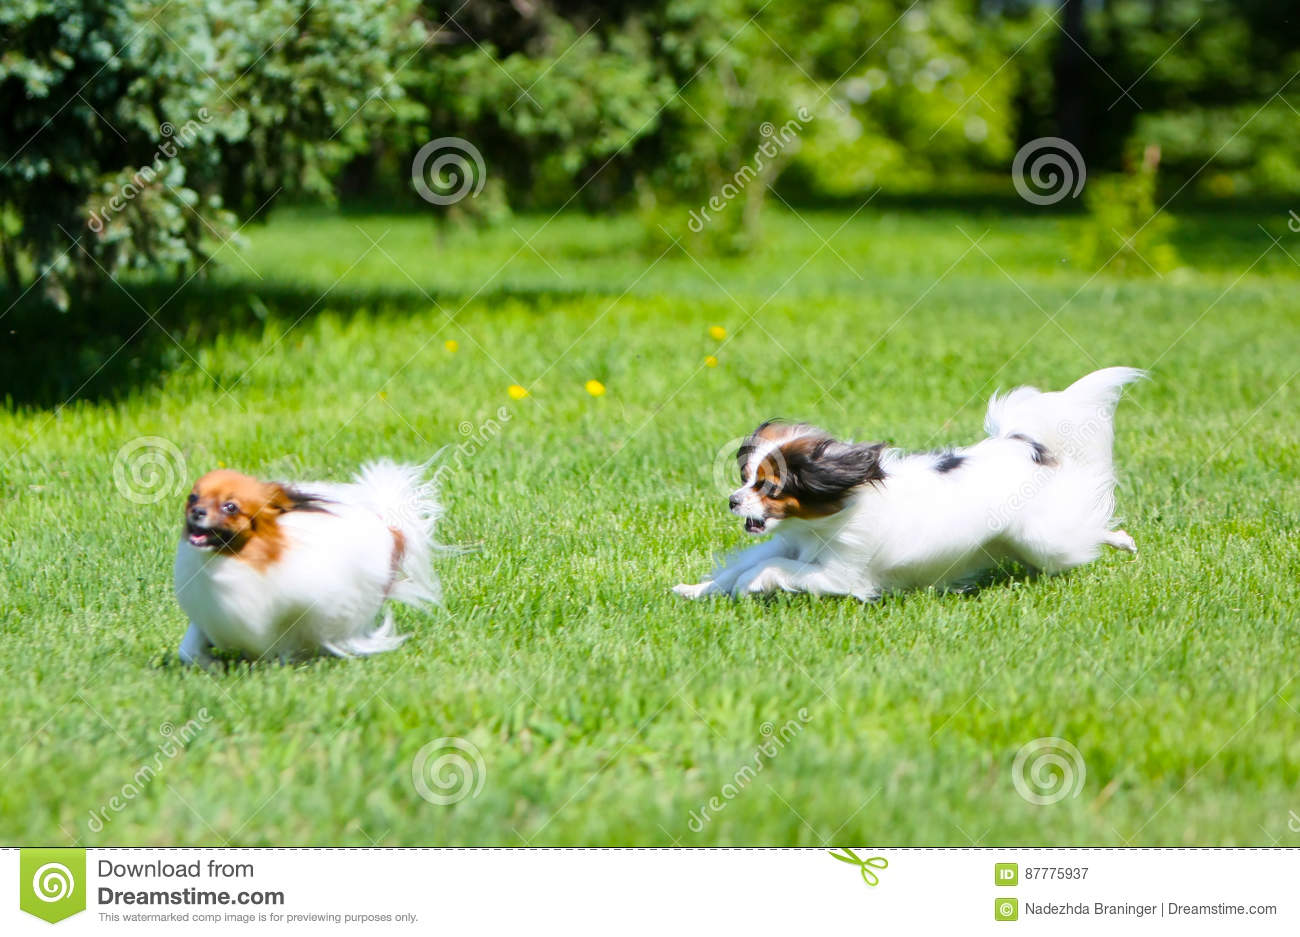 Two active white dog running around the green grass. Fluffy Puppy jumping on the lawn.